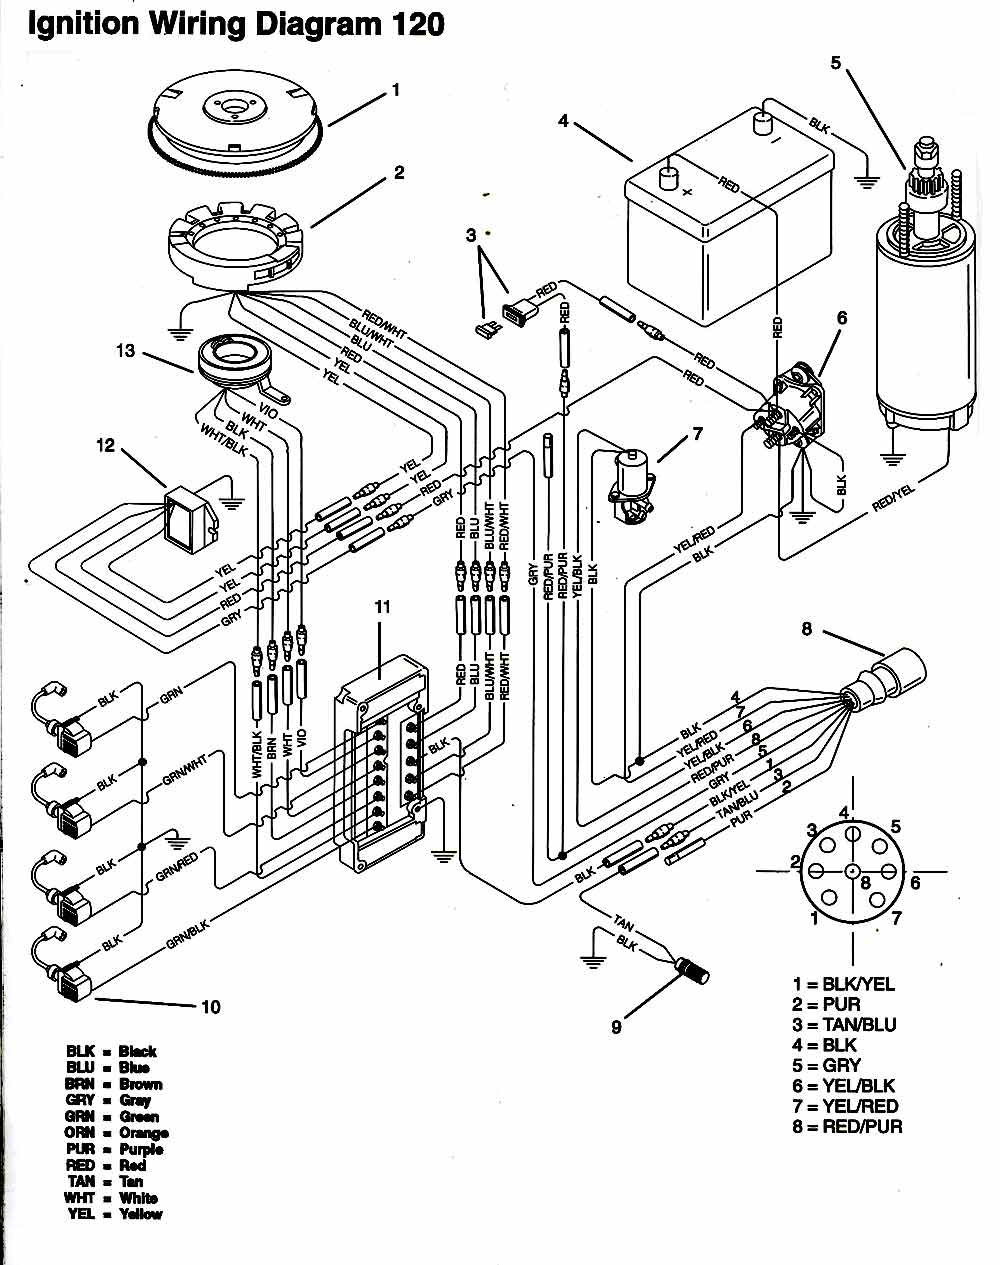 hight resolution of mercury 65 hp wiring diagram wiring diagram hub 225 mercruiser engine diagram 8 2 mercruiser engine diagram